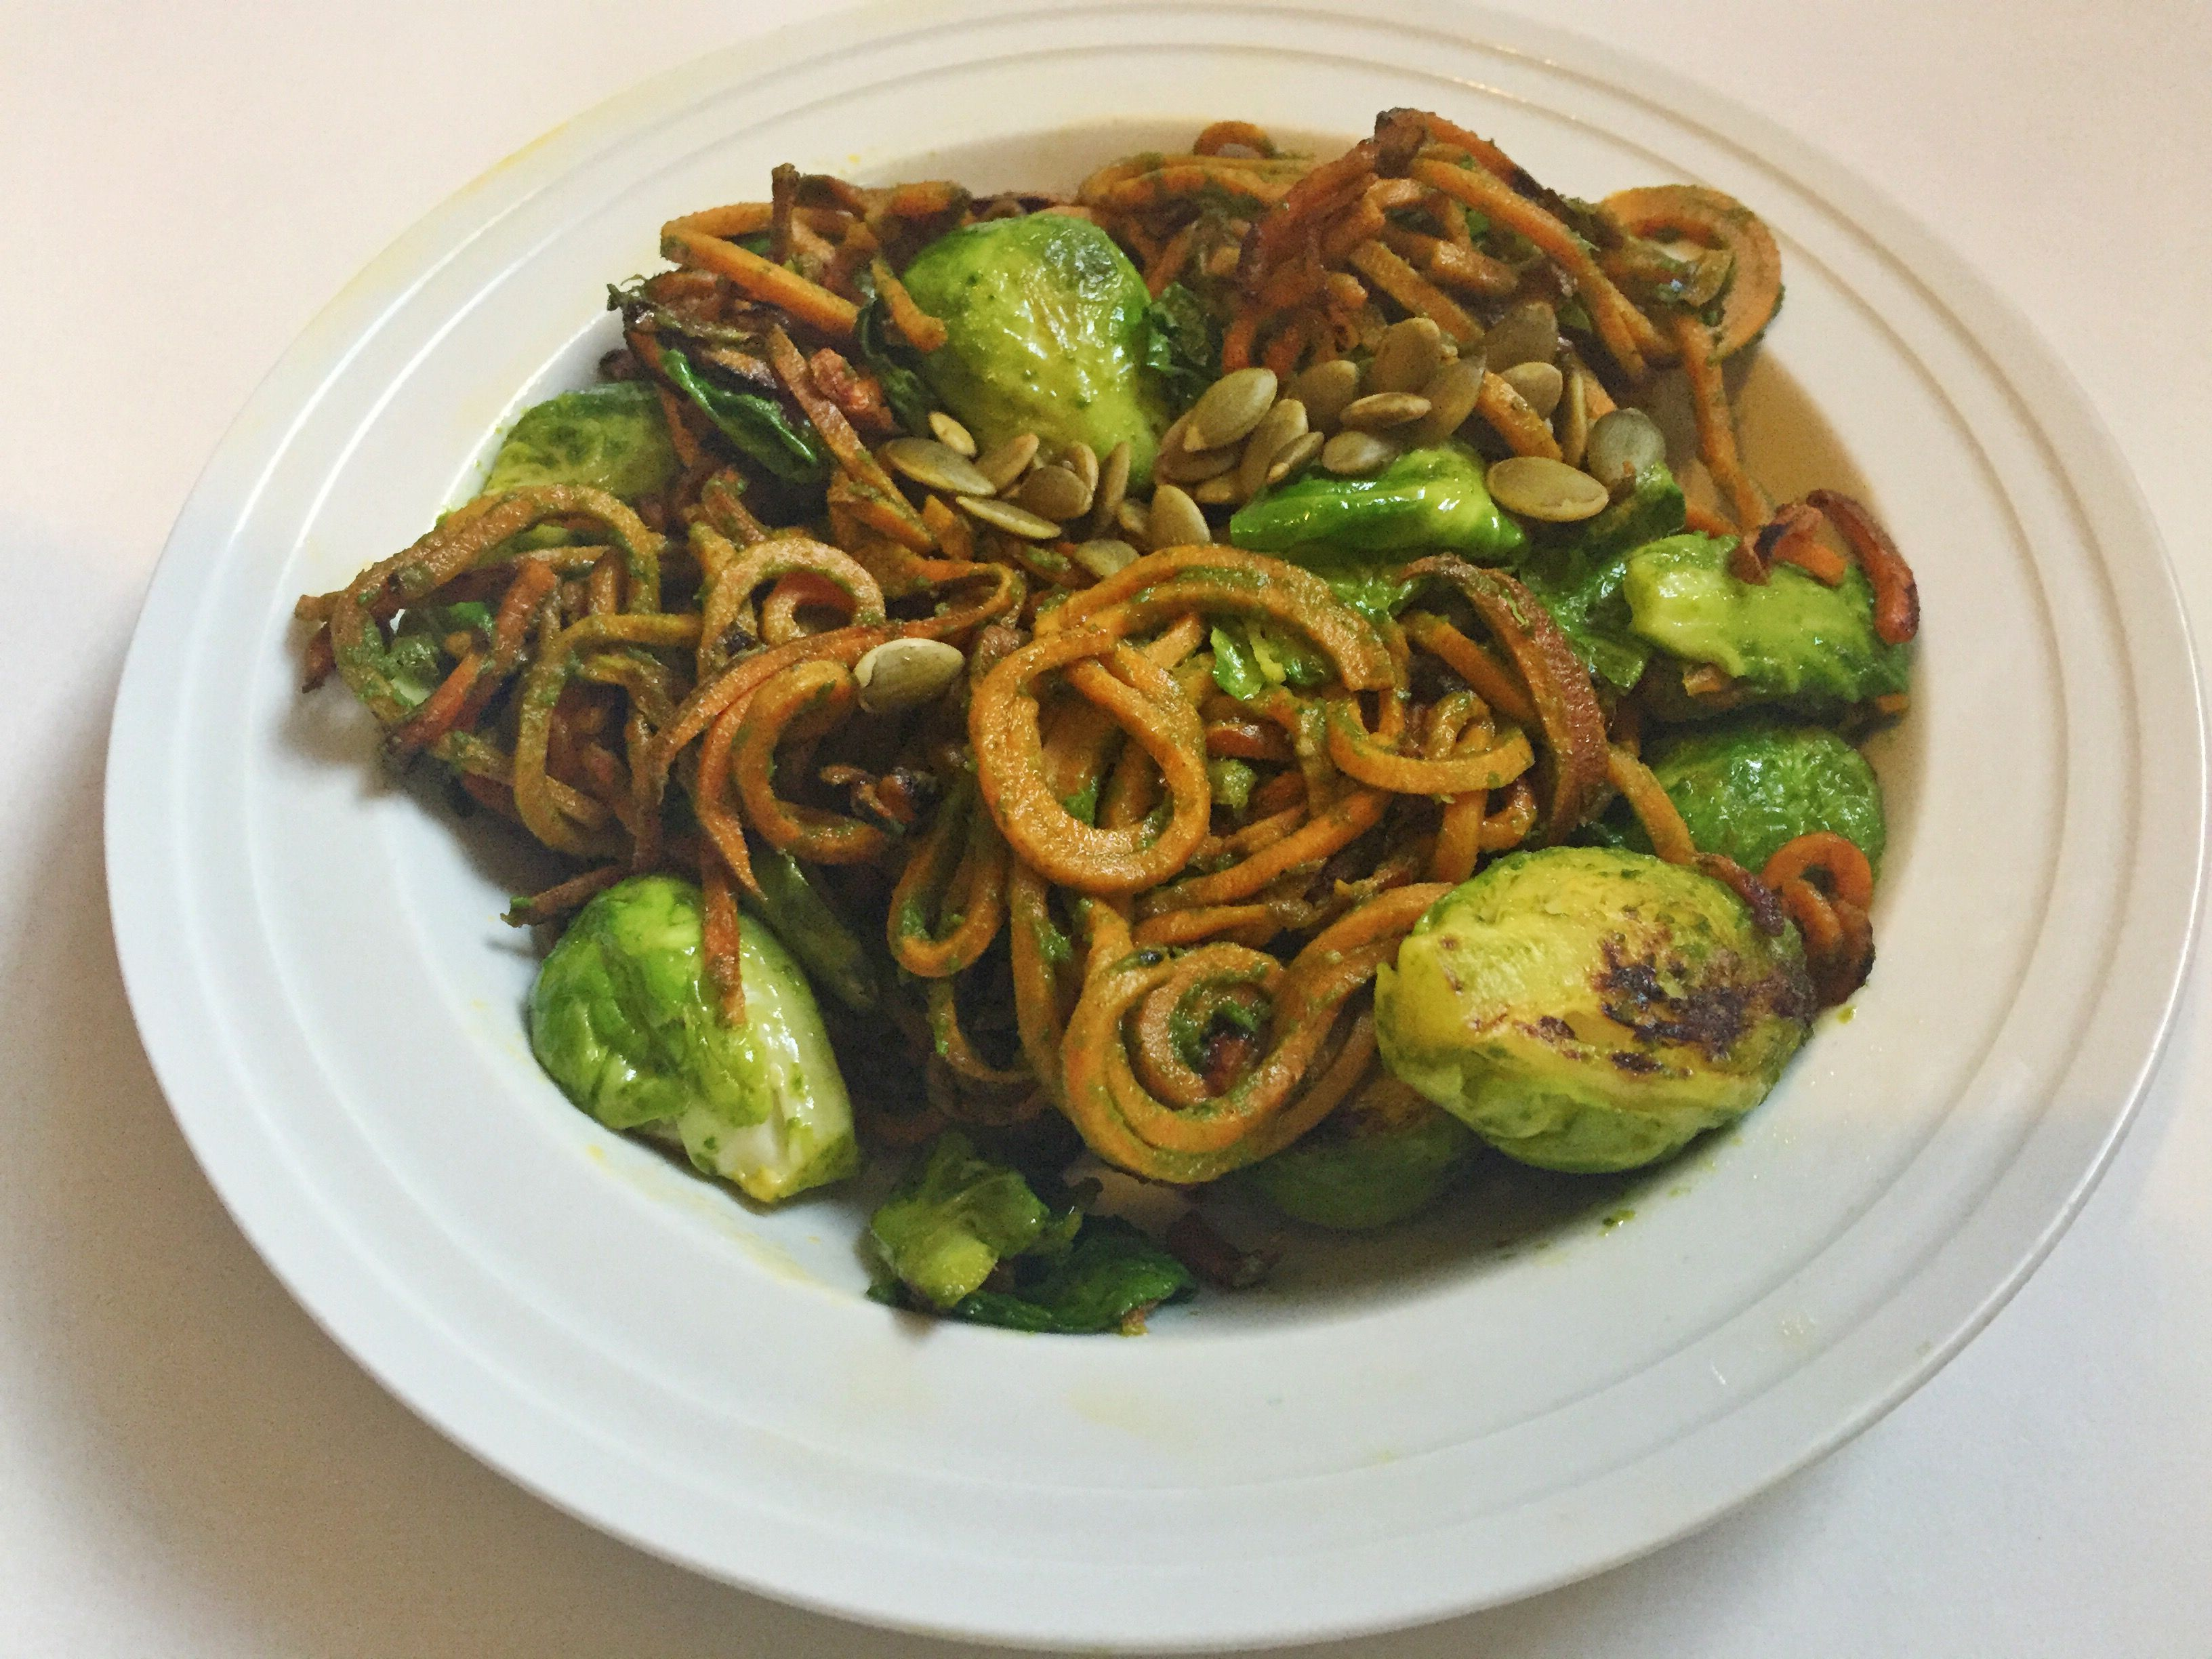 my go-to: sweet potato noodles, brussel sprouts, and